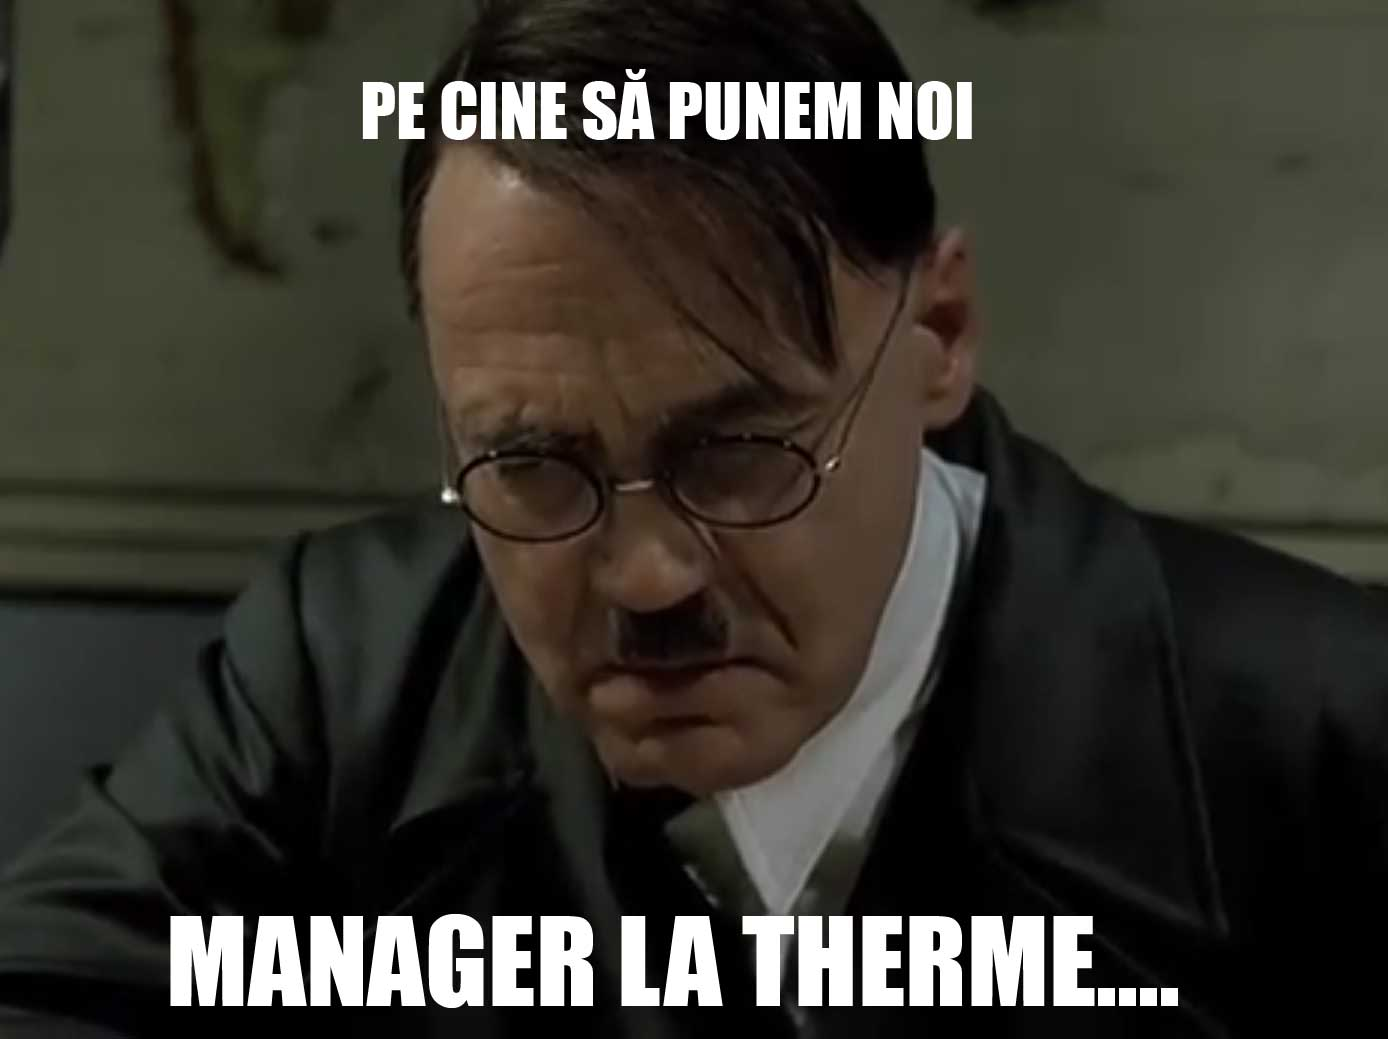 THERME-NAZISM